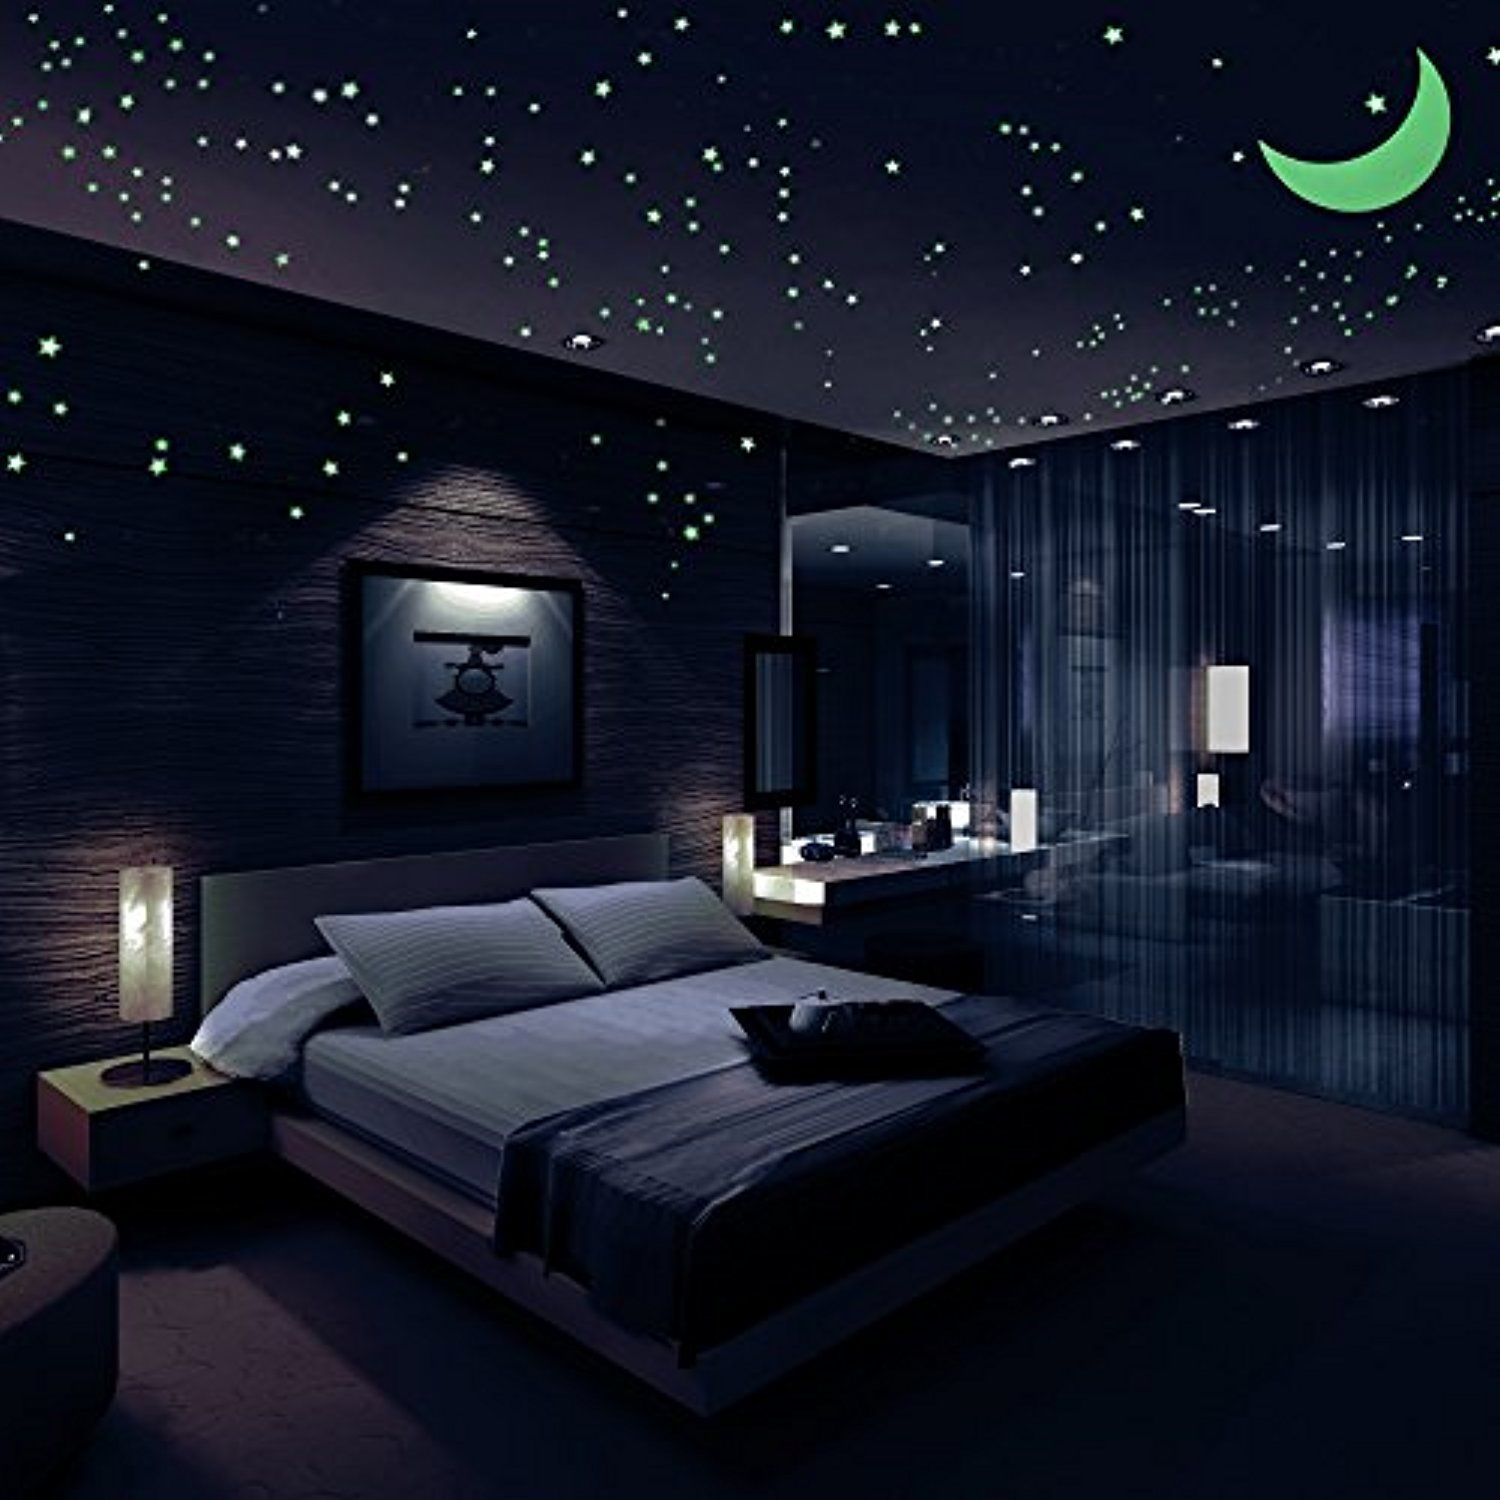 Glow In The Dark Stars Decals Stickers Pack Of 446 408 Stars 1 Moon 36 Meteor Tail And 1 Constellati Modern Bedroom Decor Modern Bedroom Design Modern Bedroom